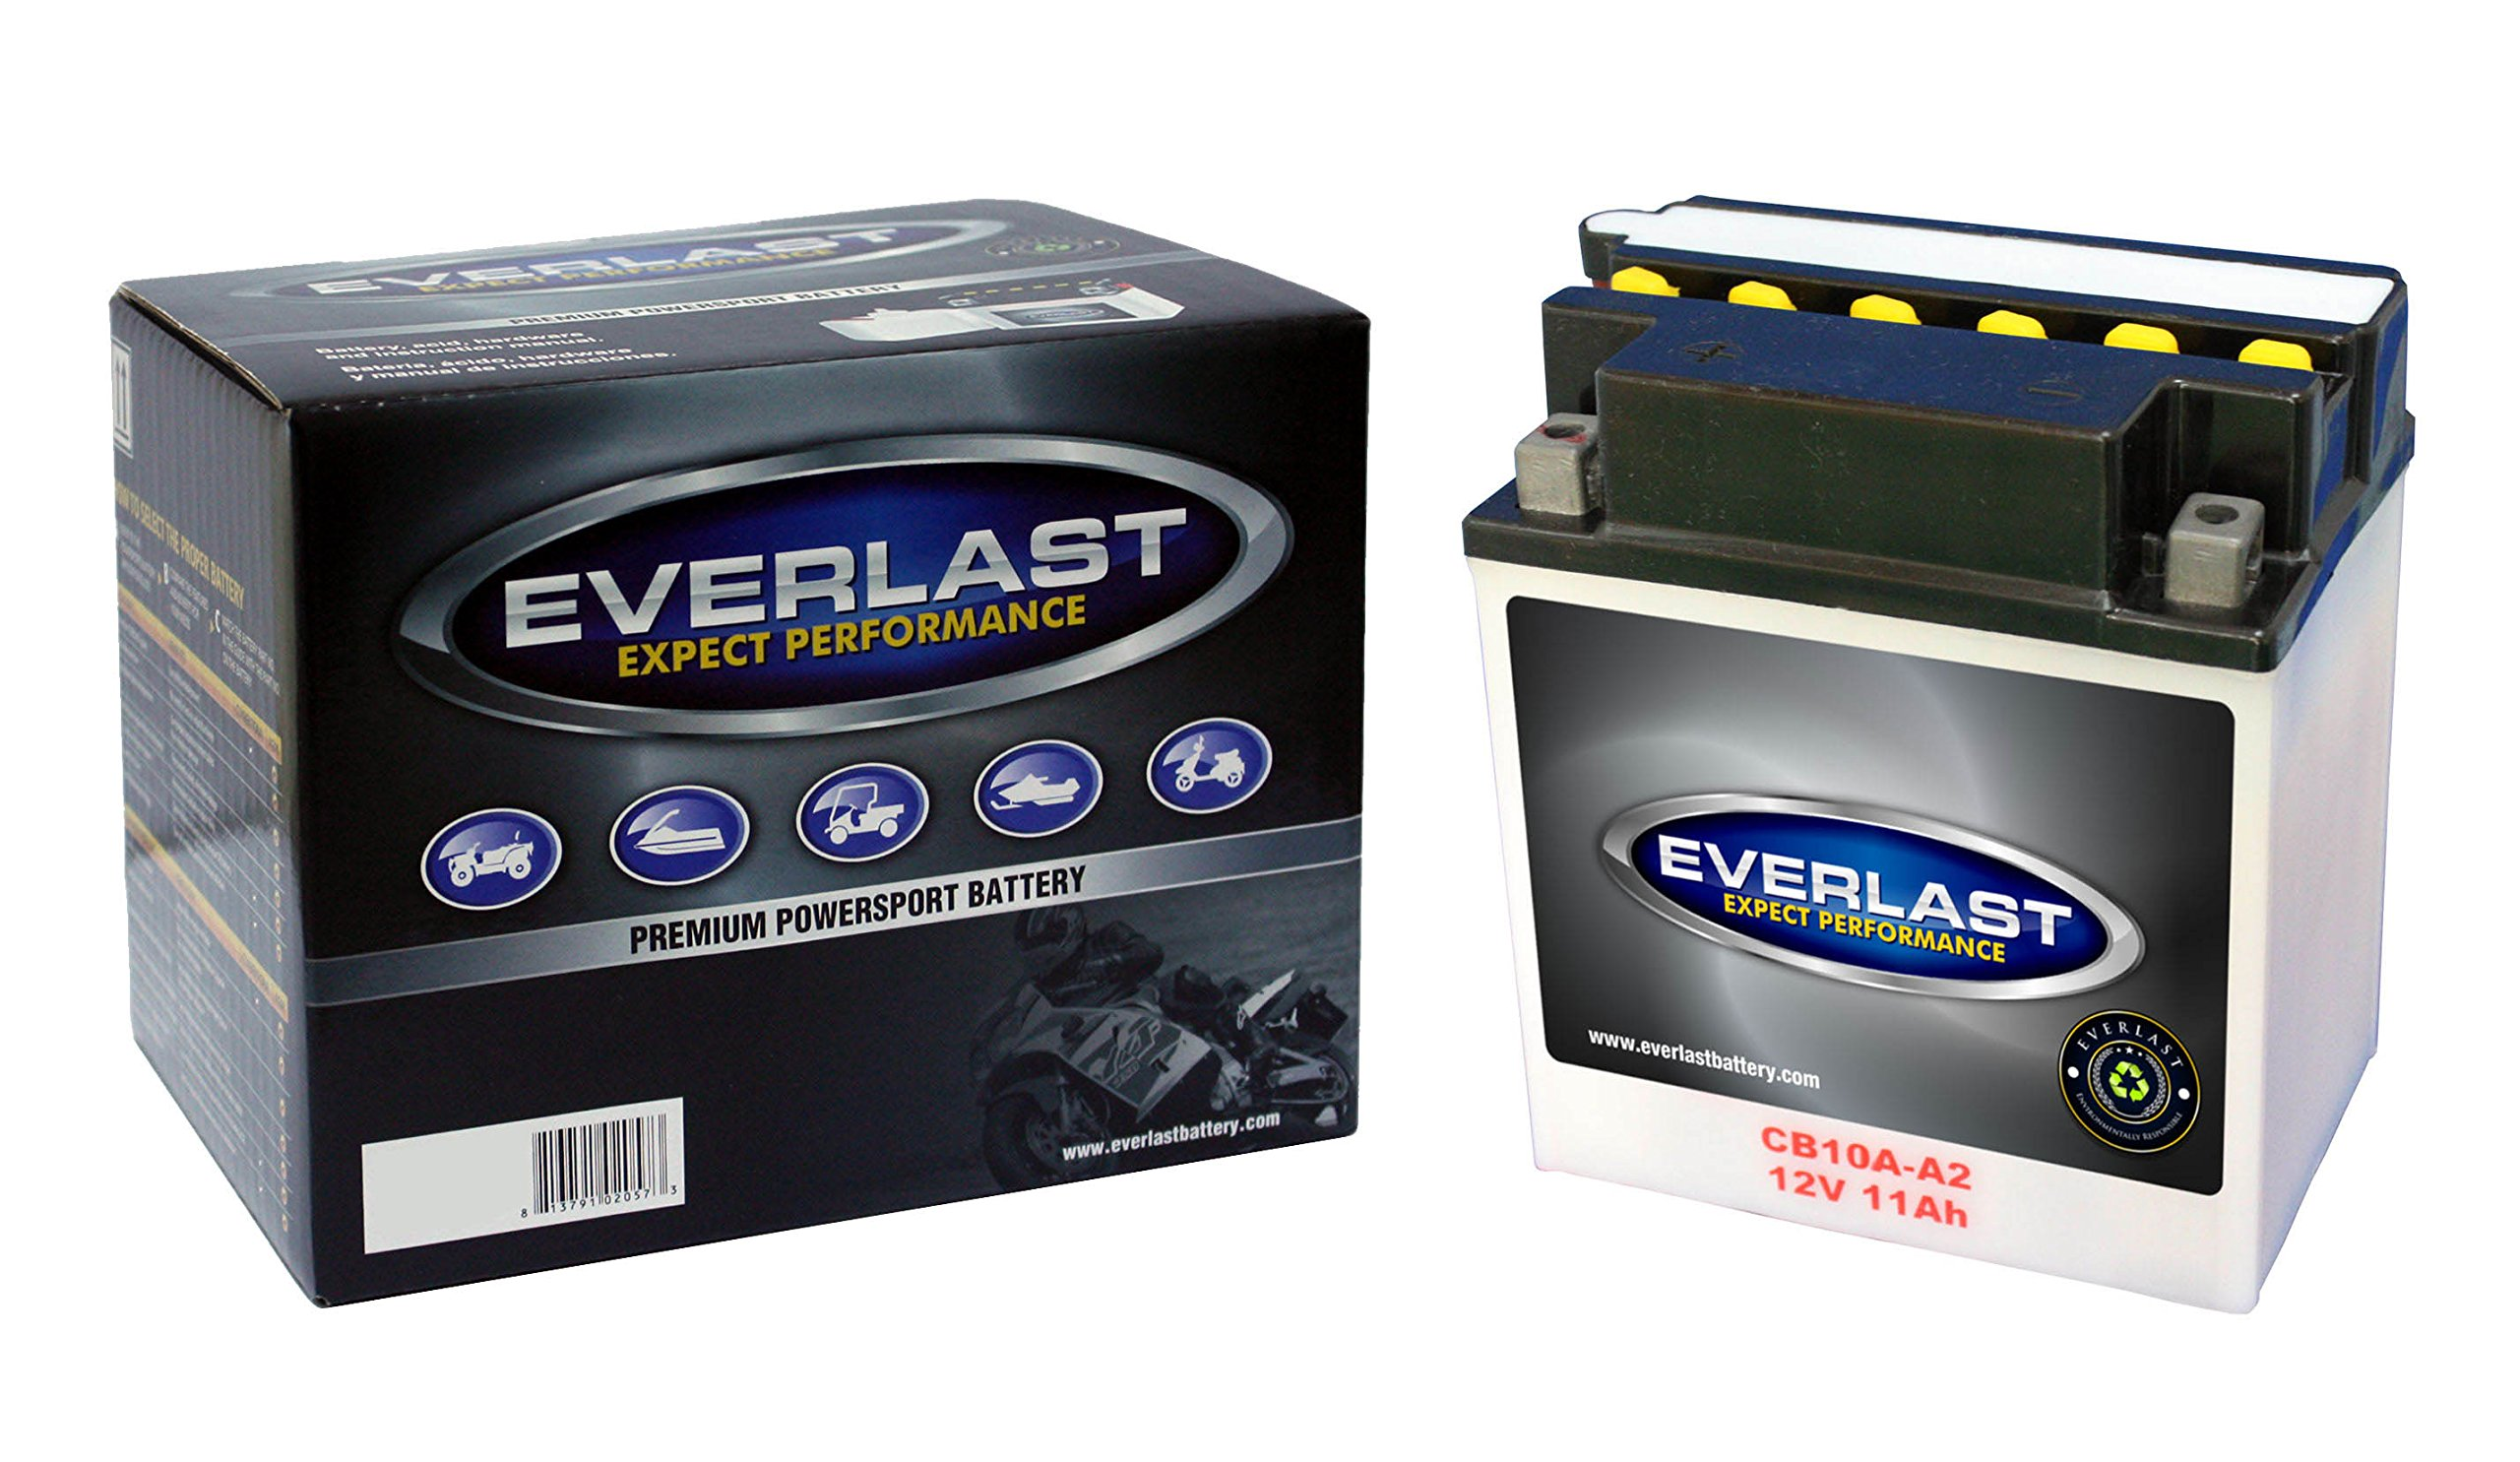 EverLast CB10A-A2 12V Conventional Battery with Acid Pack (5 5/16 L X 3 9/16 W X 6 1/16 H)